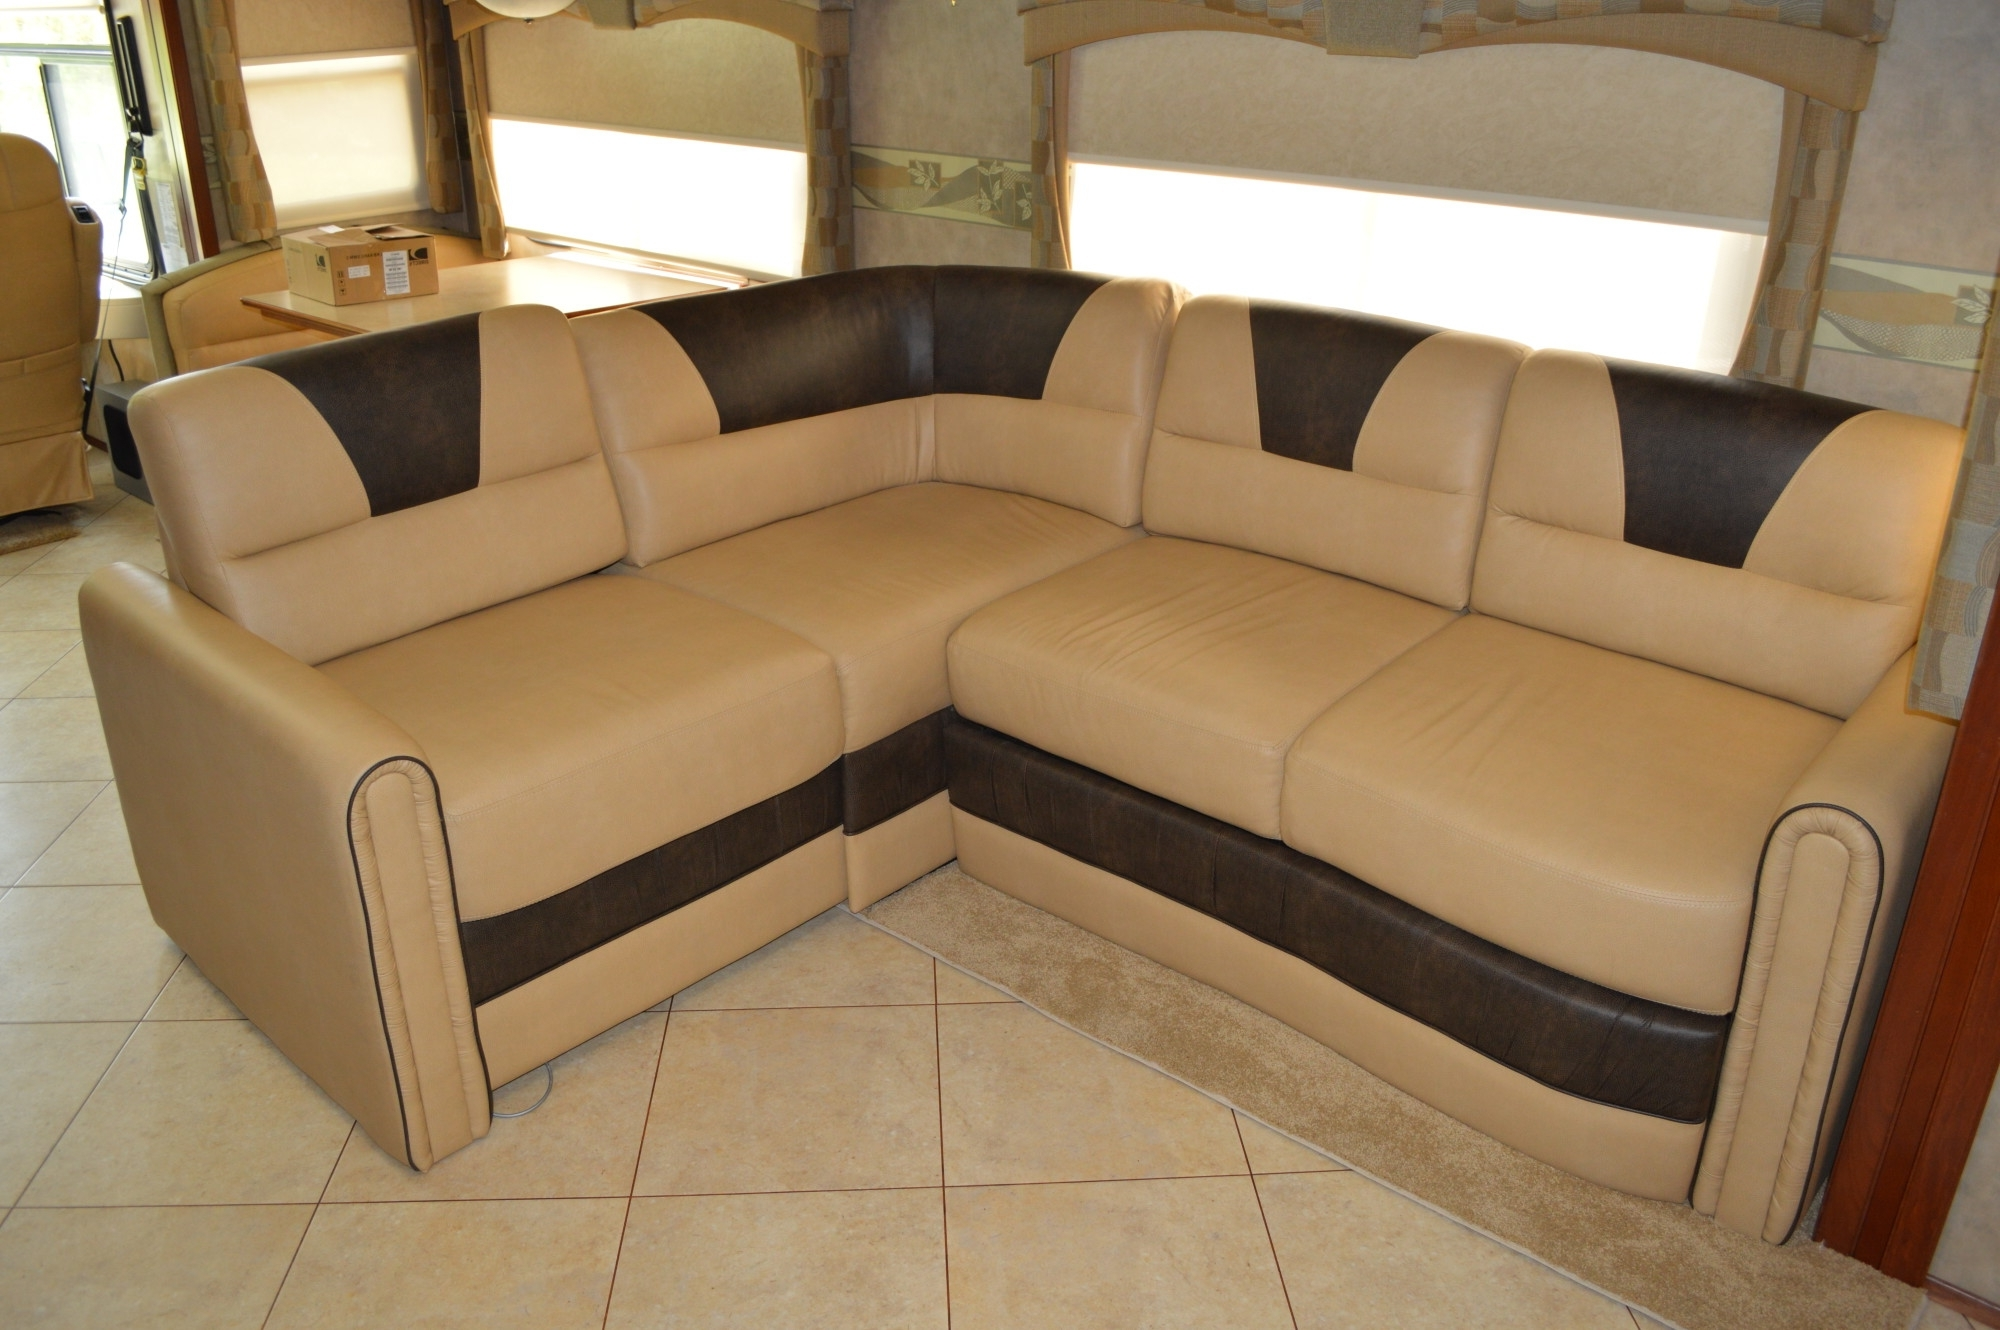 Sofa : How To Make Rv Sofa Bed More Comfortable Rv Sofa Sleeper With Regard To Current Sectional Sofas For Campers (Gallery 4 of 20)